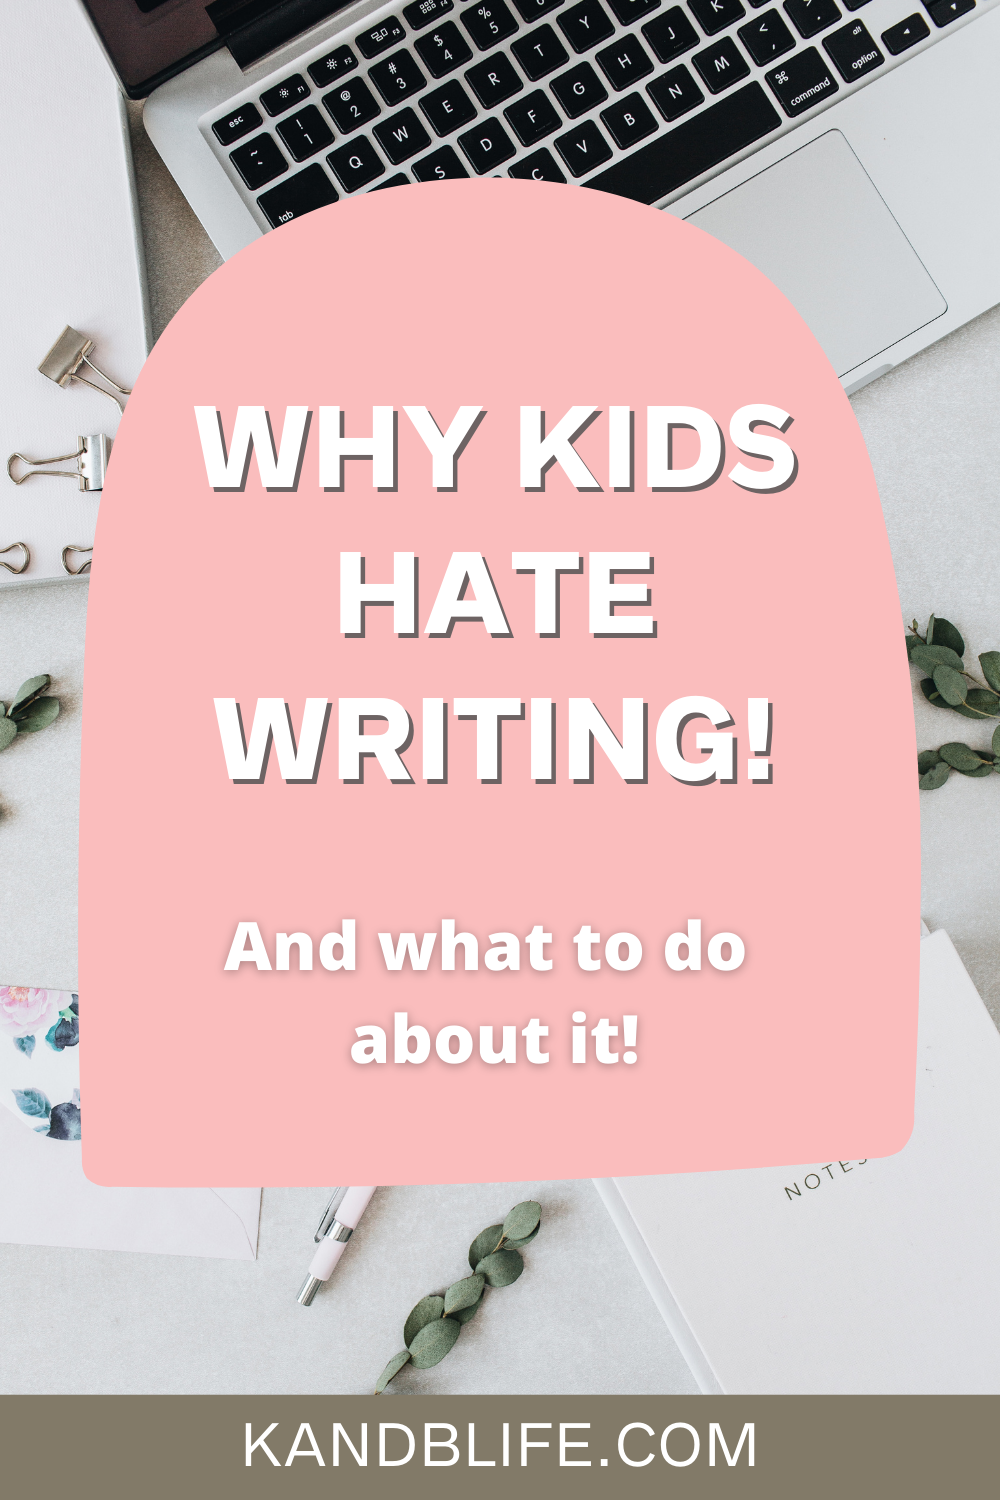 Why kids hate writing article.